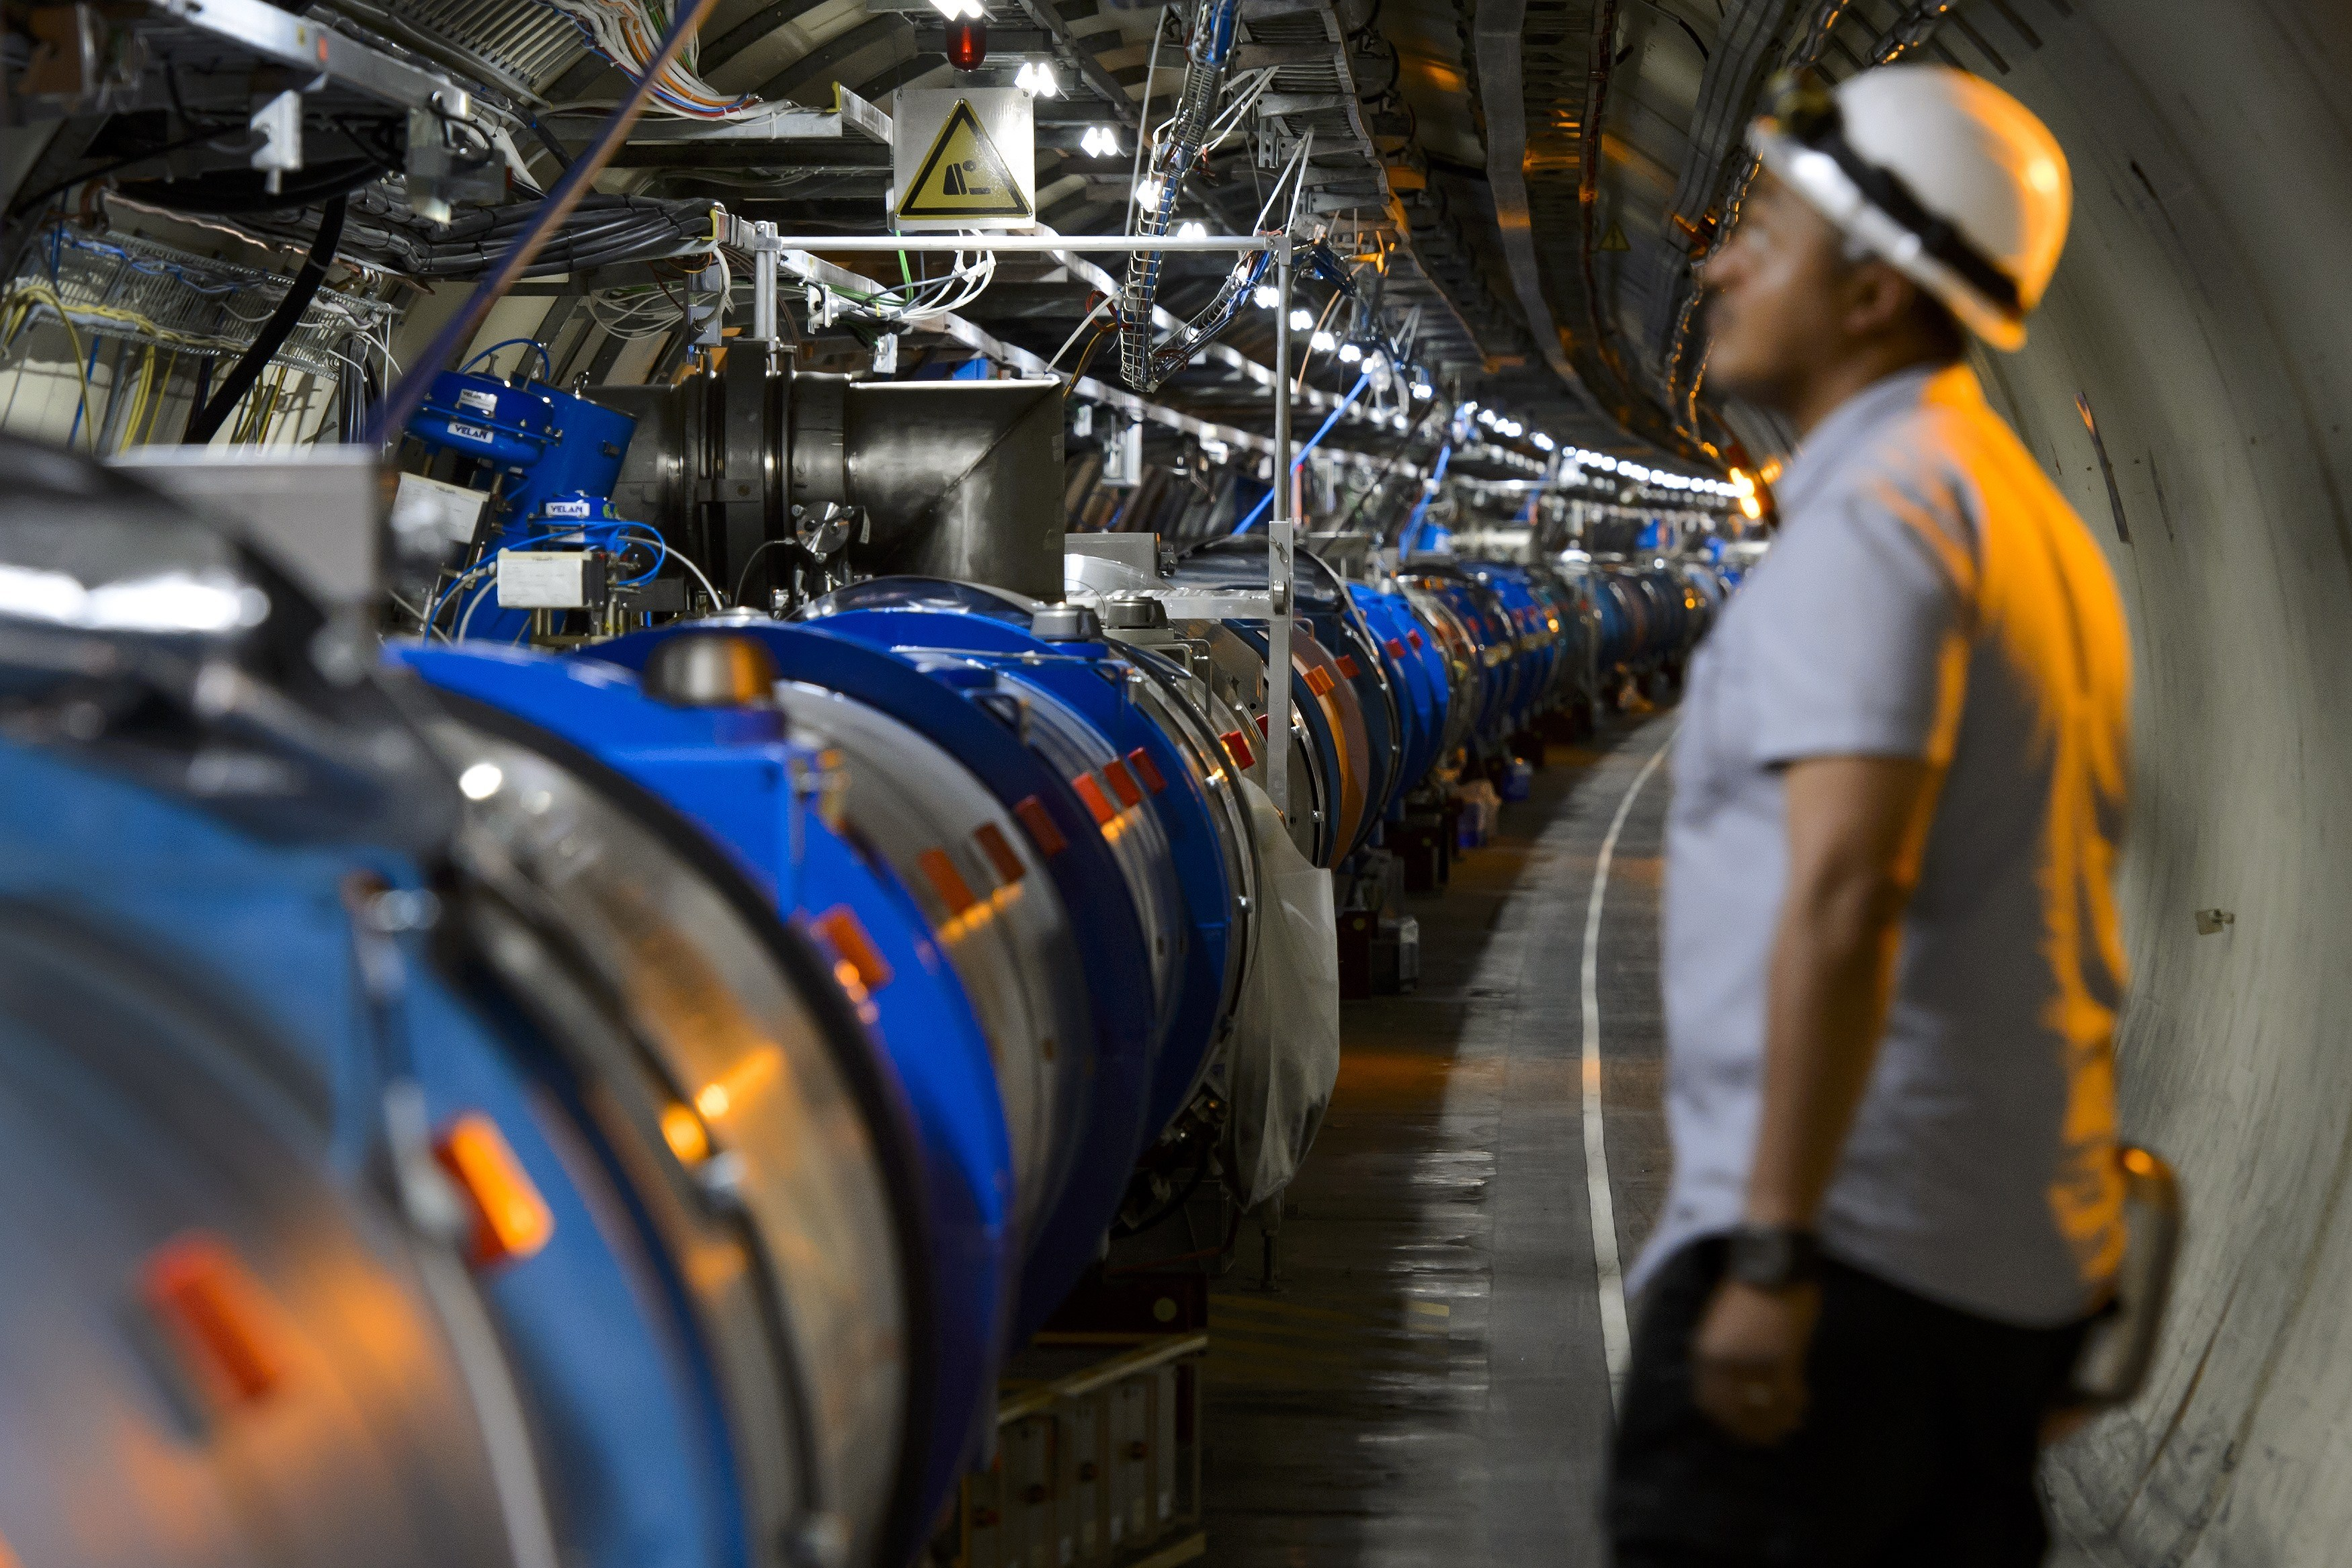 A scientist looks up at a section of the Large Hadron Collider.